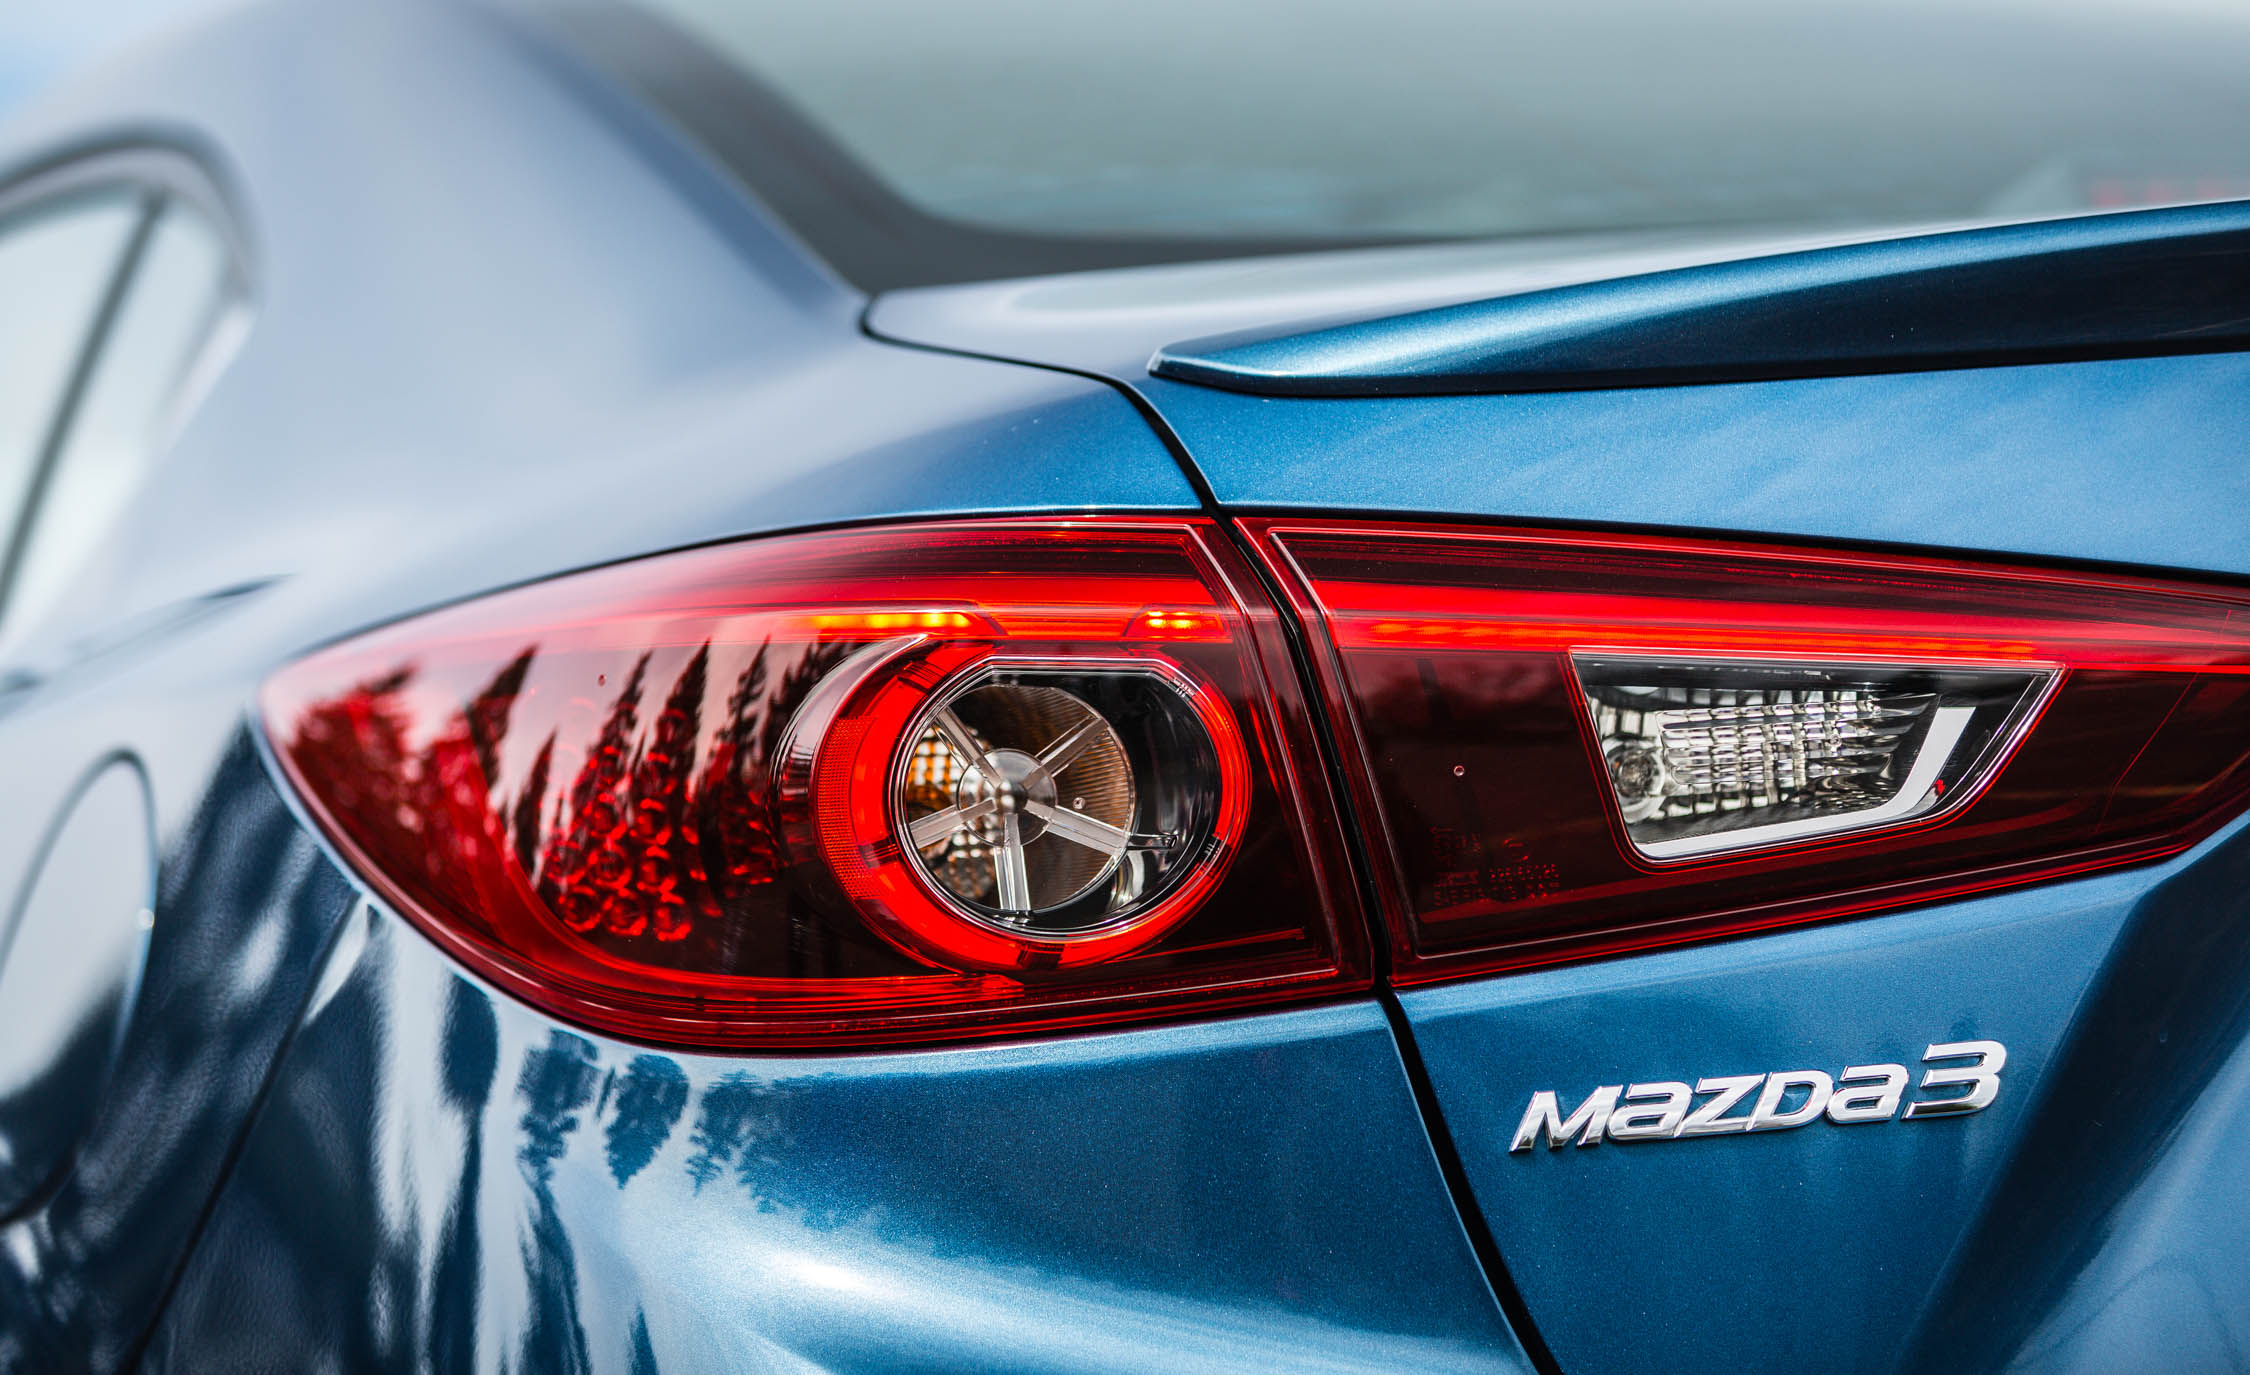 2017 Mazda 3 Grand Touring Sedan Exterior View Taillight (Photo 15 of 51)